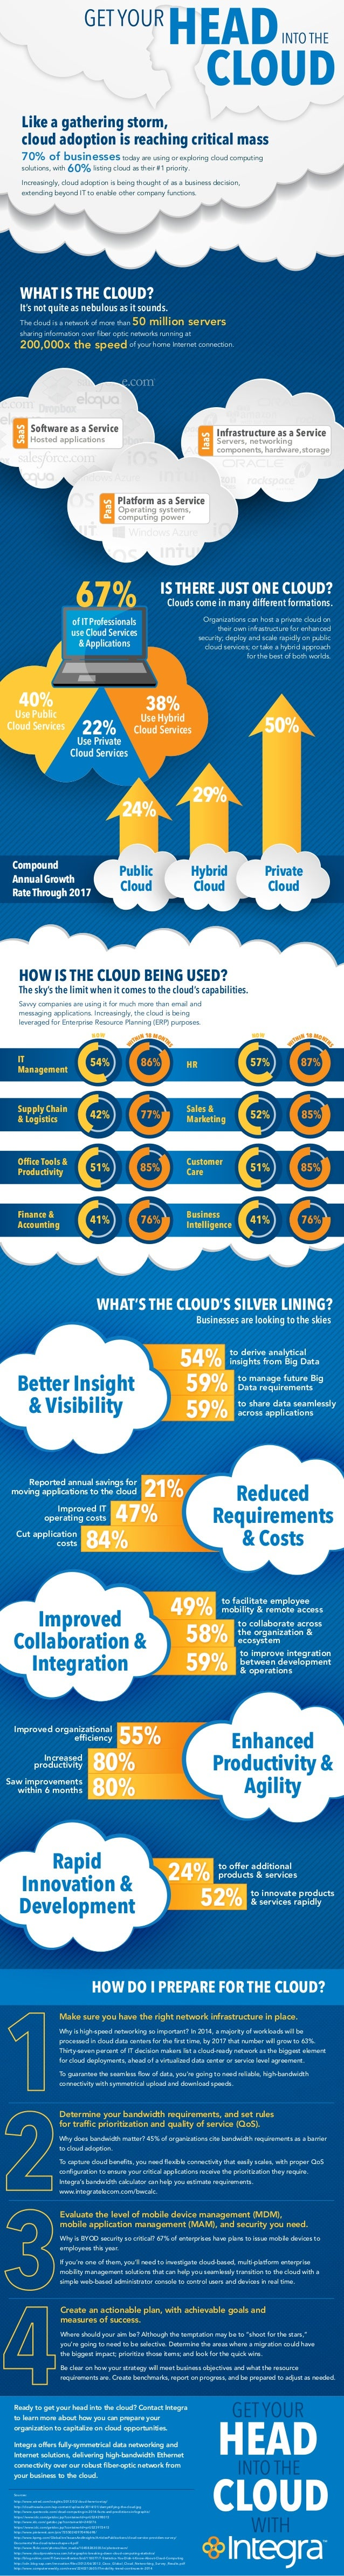 HOW IS THE CLOUD BEING USED? The sky's the limit when it comes to the cloud's capabilities. Savvy companies are using it f...